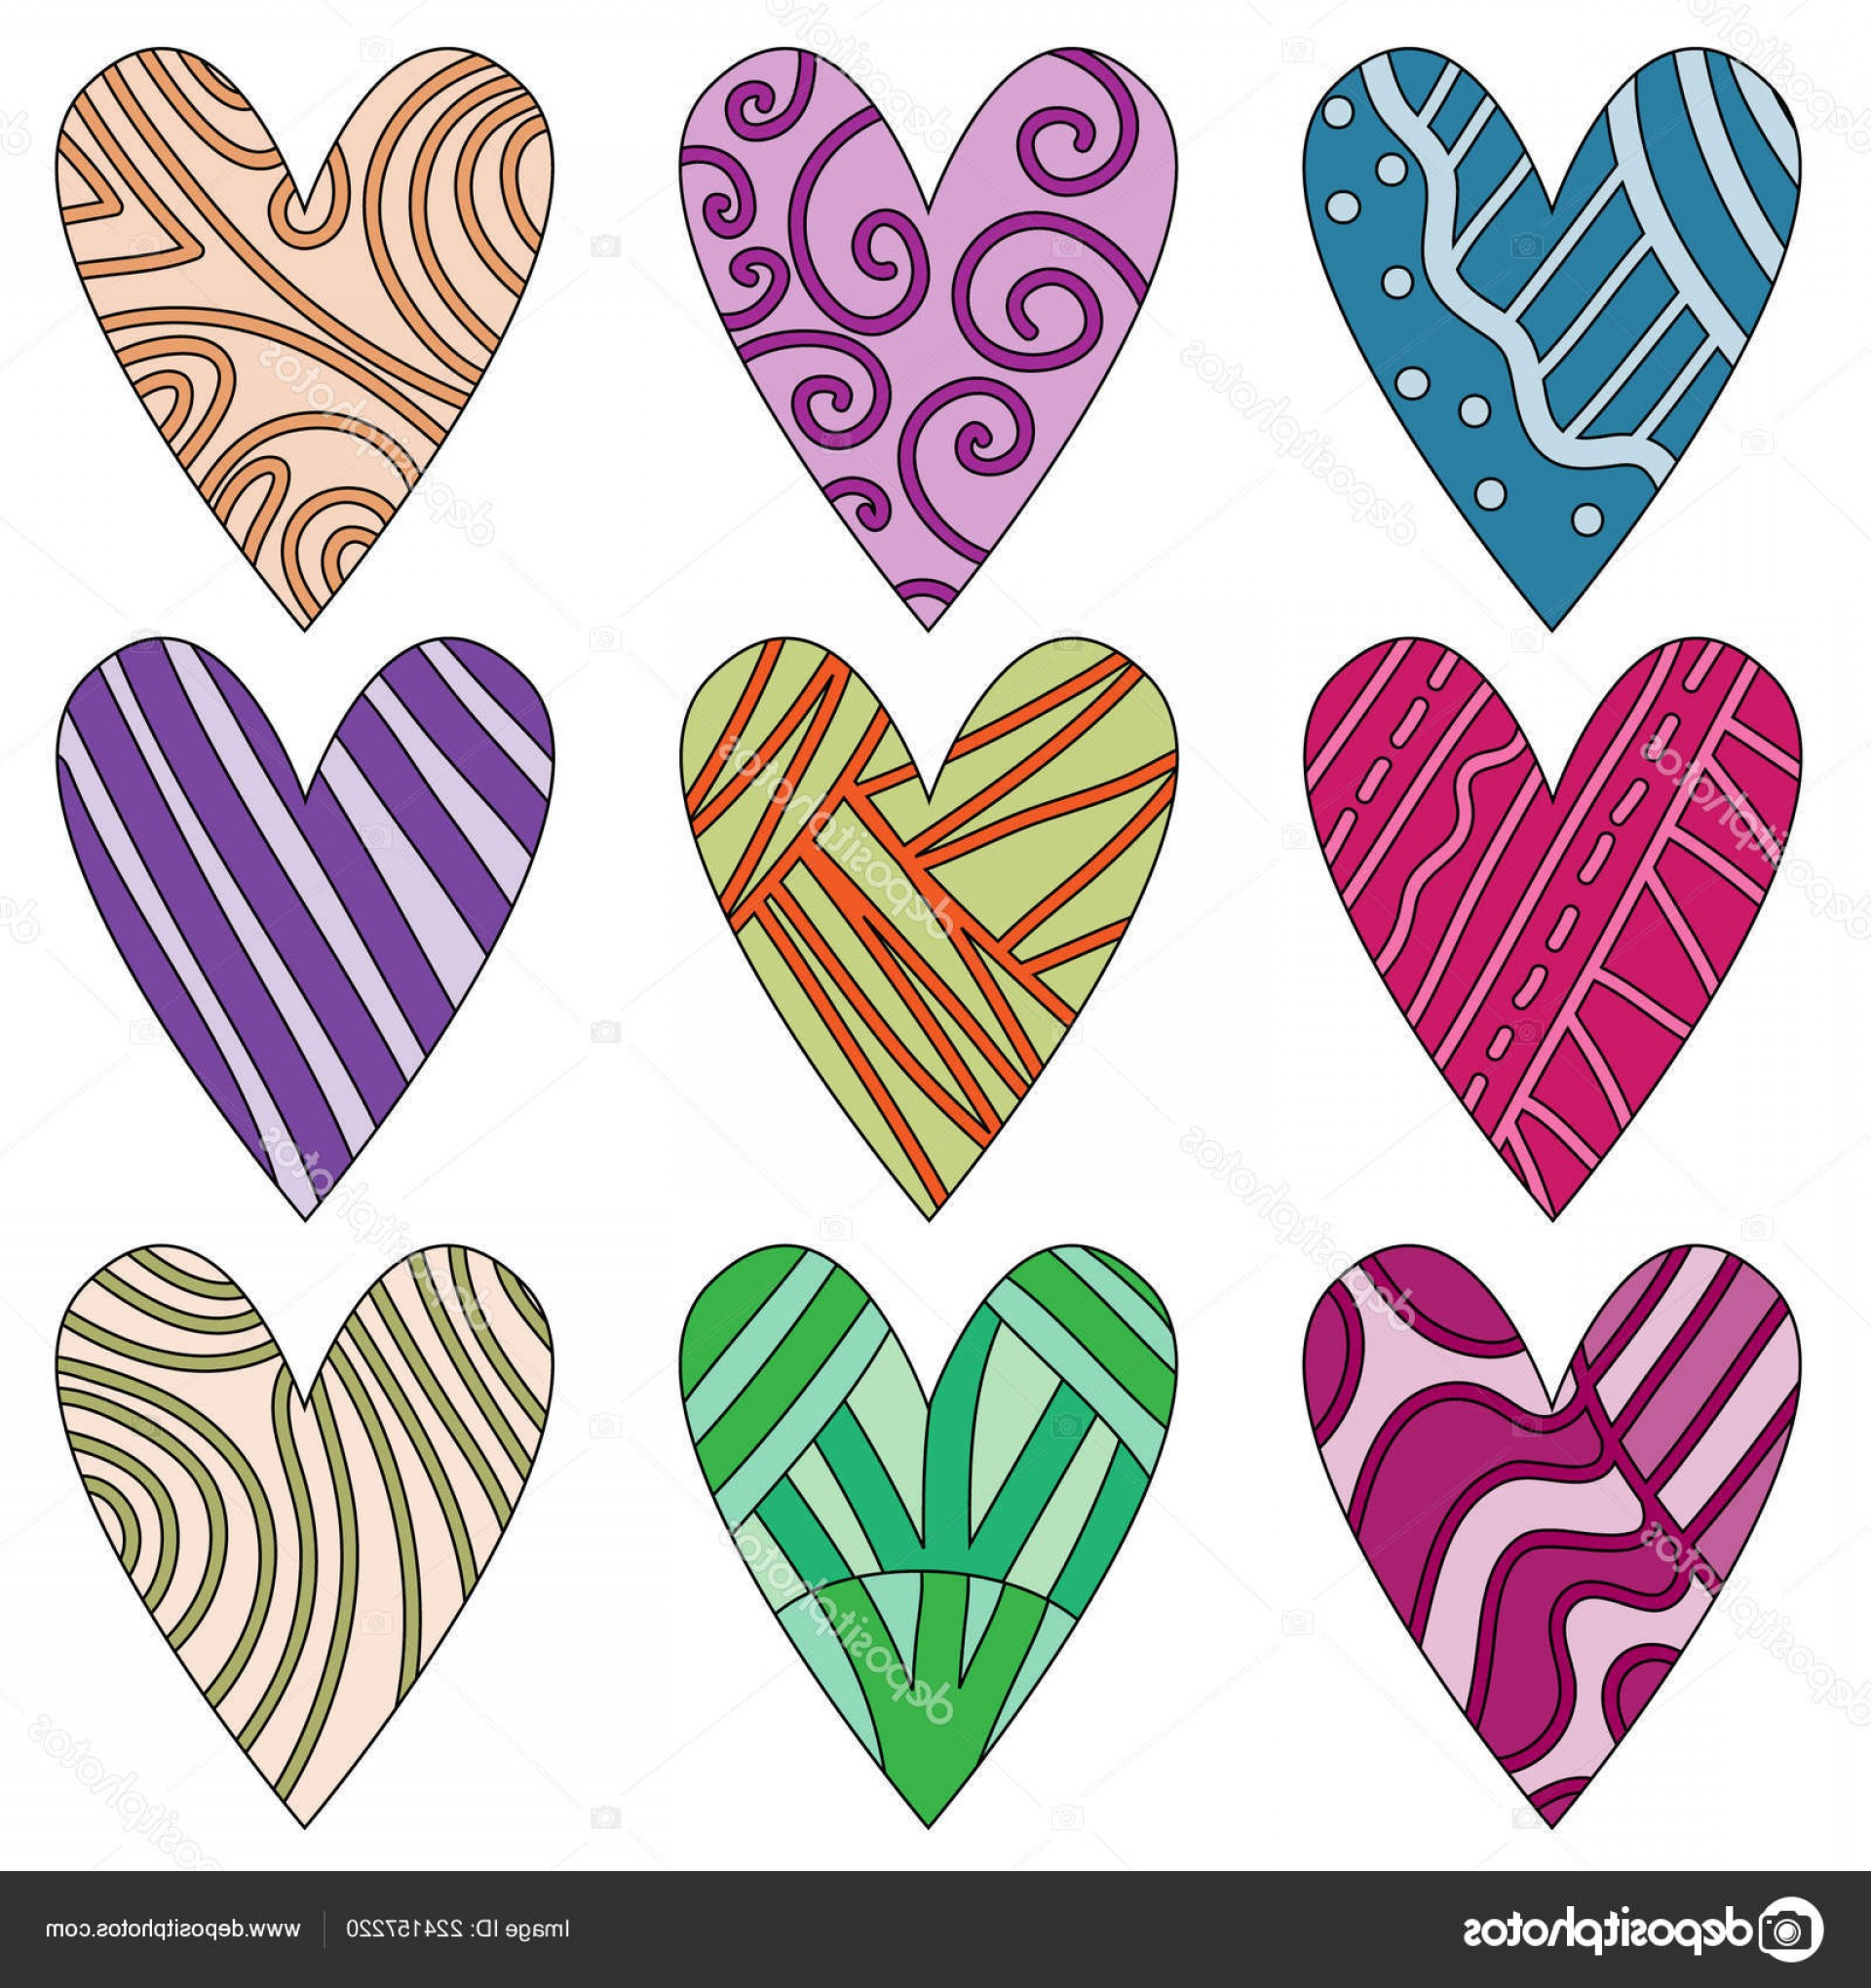 Cool Vector Hearts Pattern Symbol Pattern: Stock Illustration Colourful Hearts Pattern Symbols Isolated